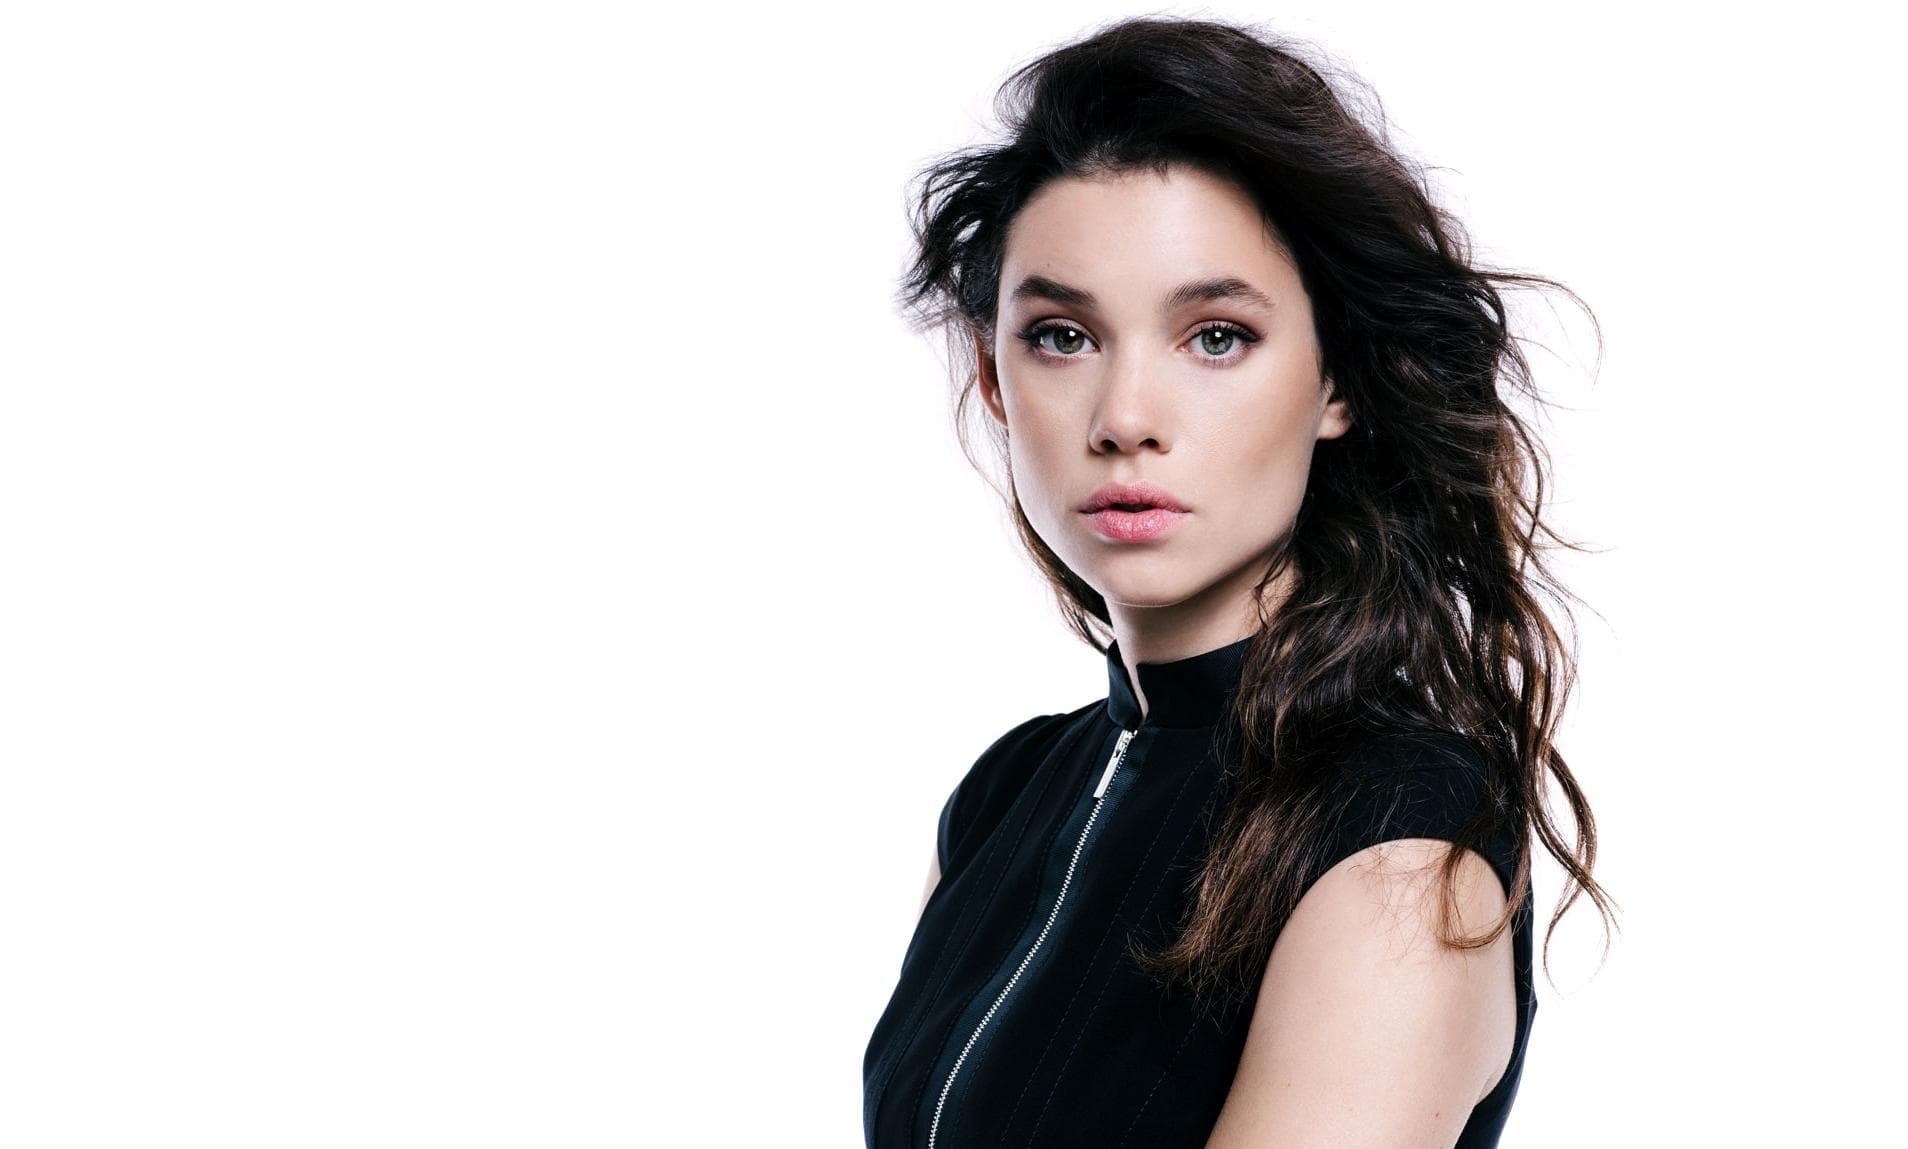 Astrid Berges-Frisbey Background